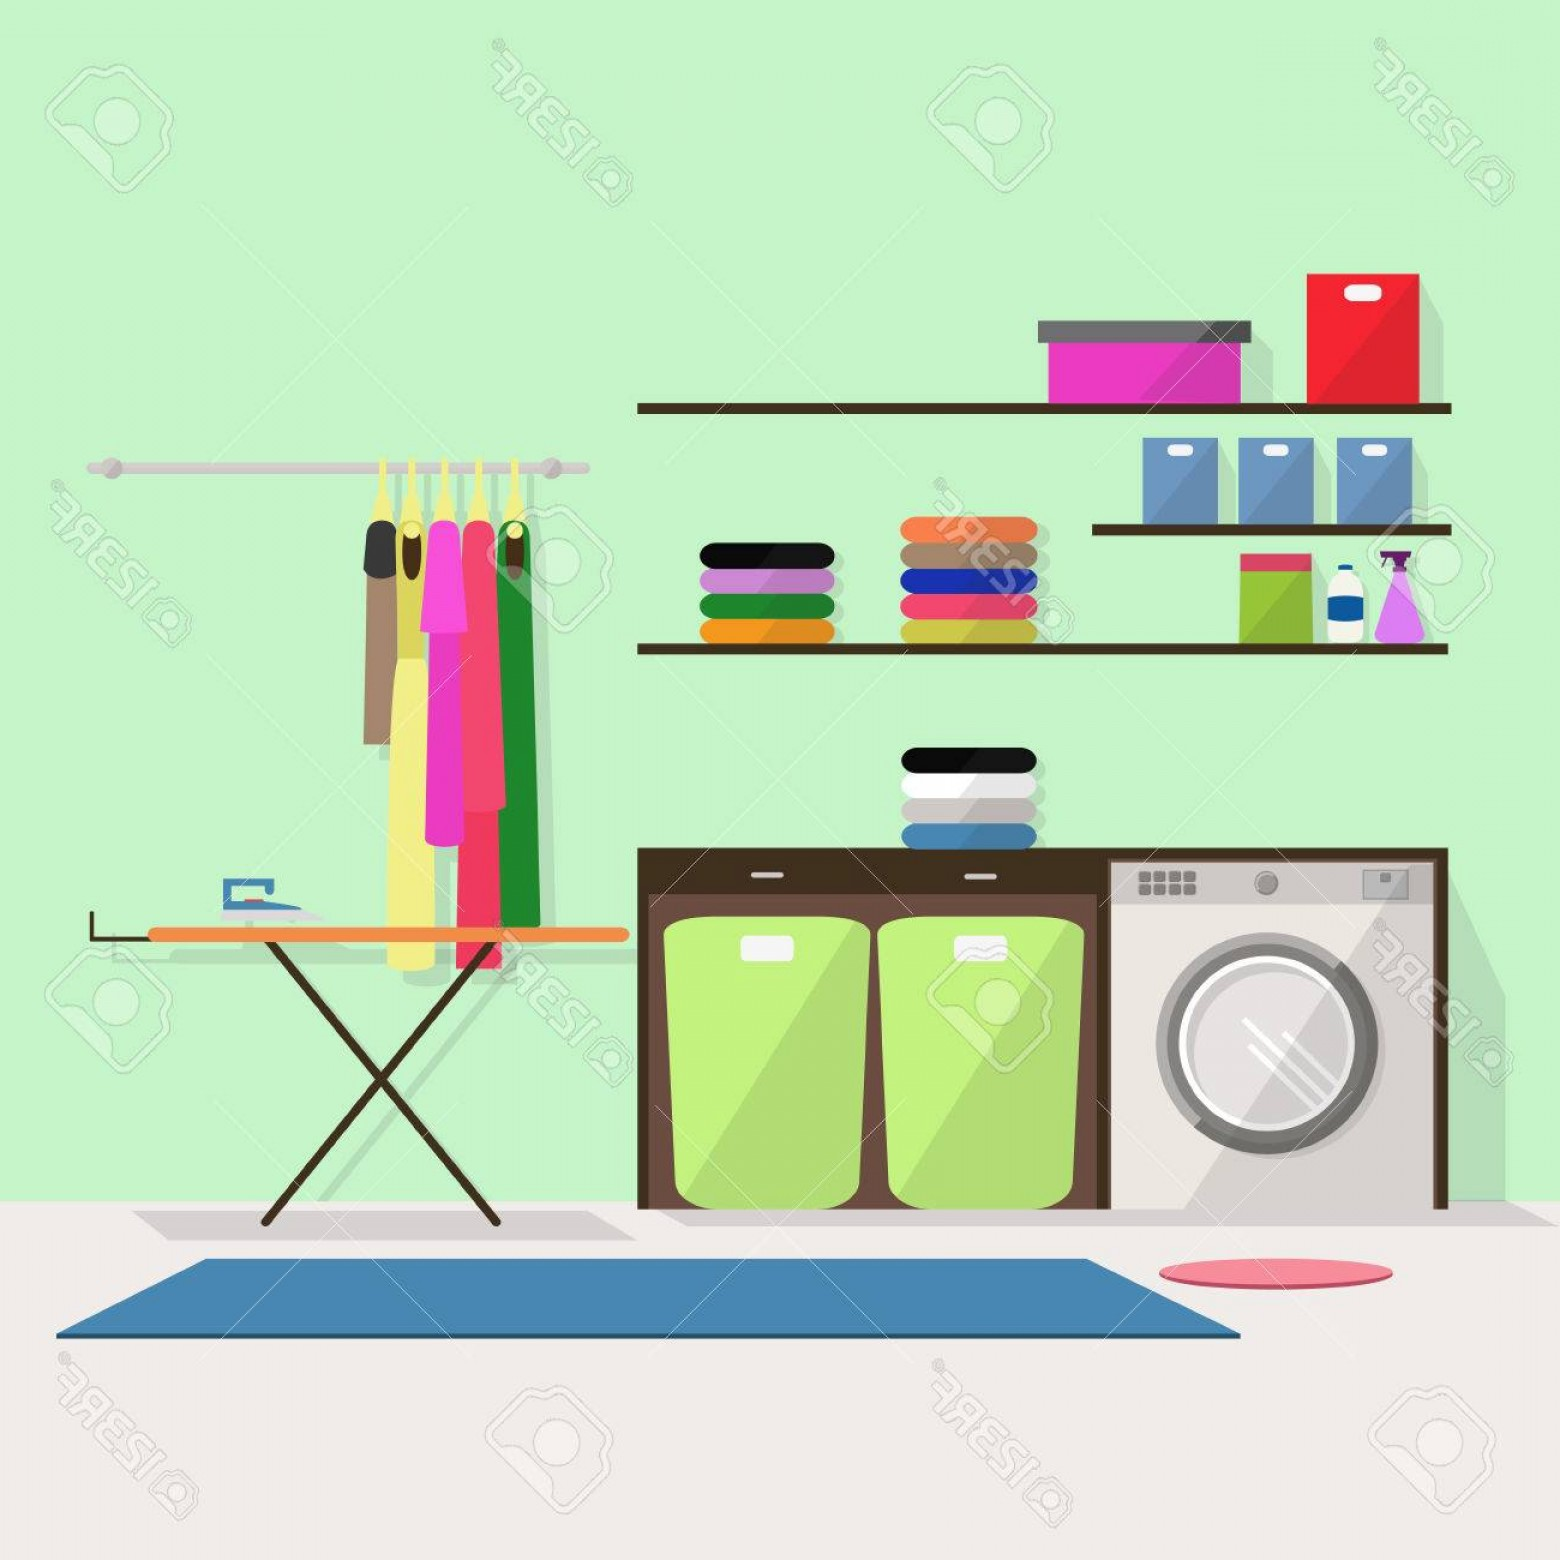 Photostock Vector Laundry Room With Washing Machine Iron.